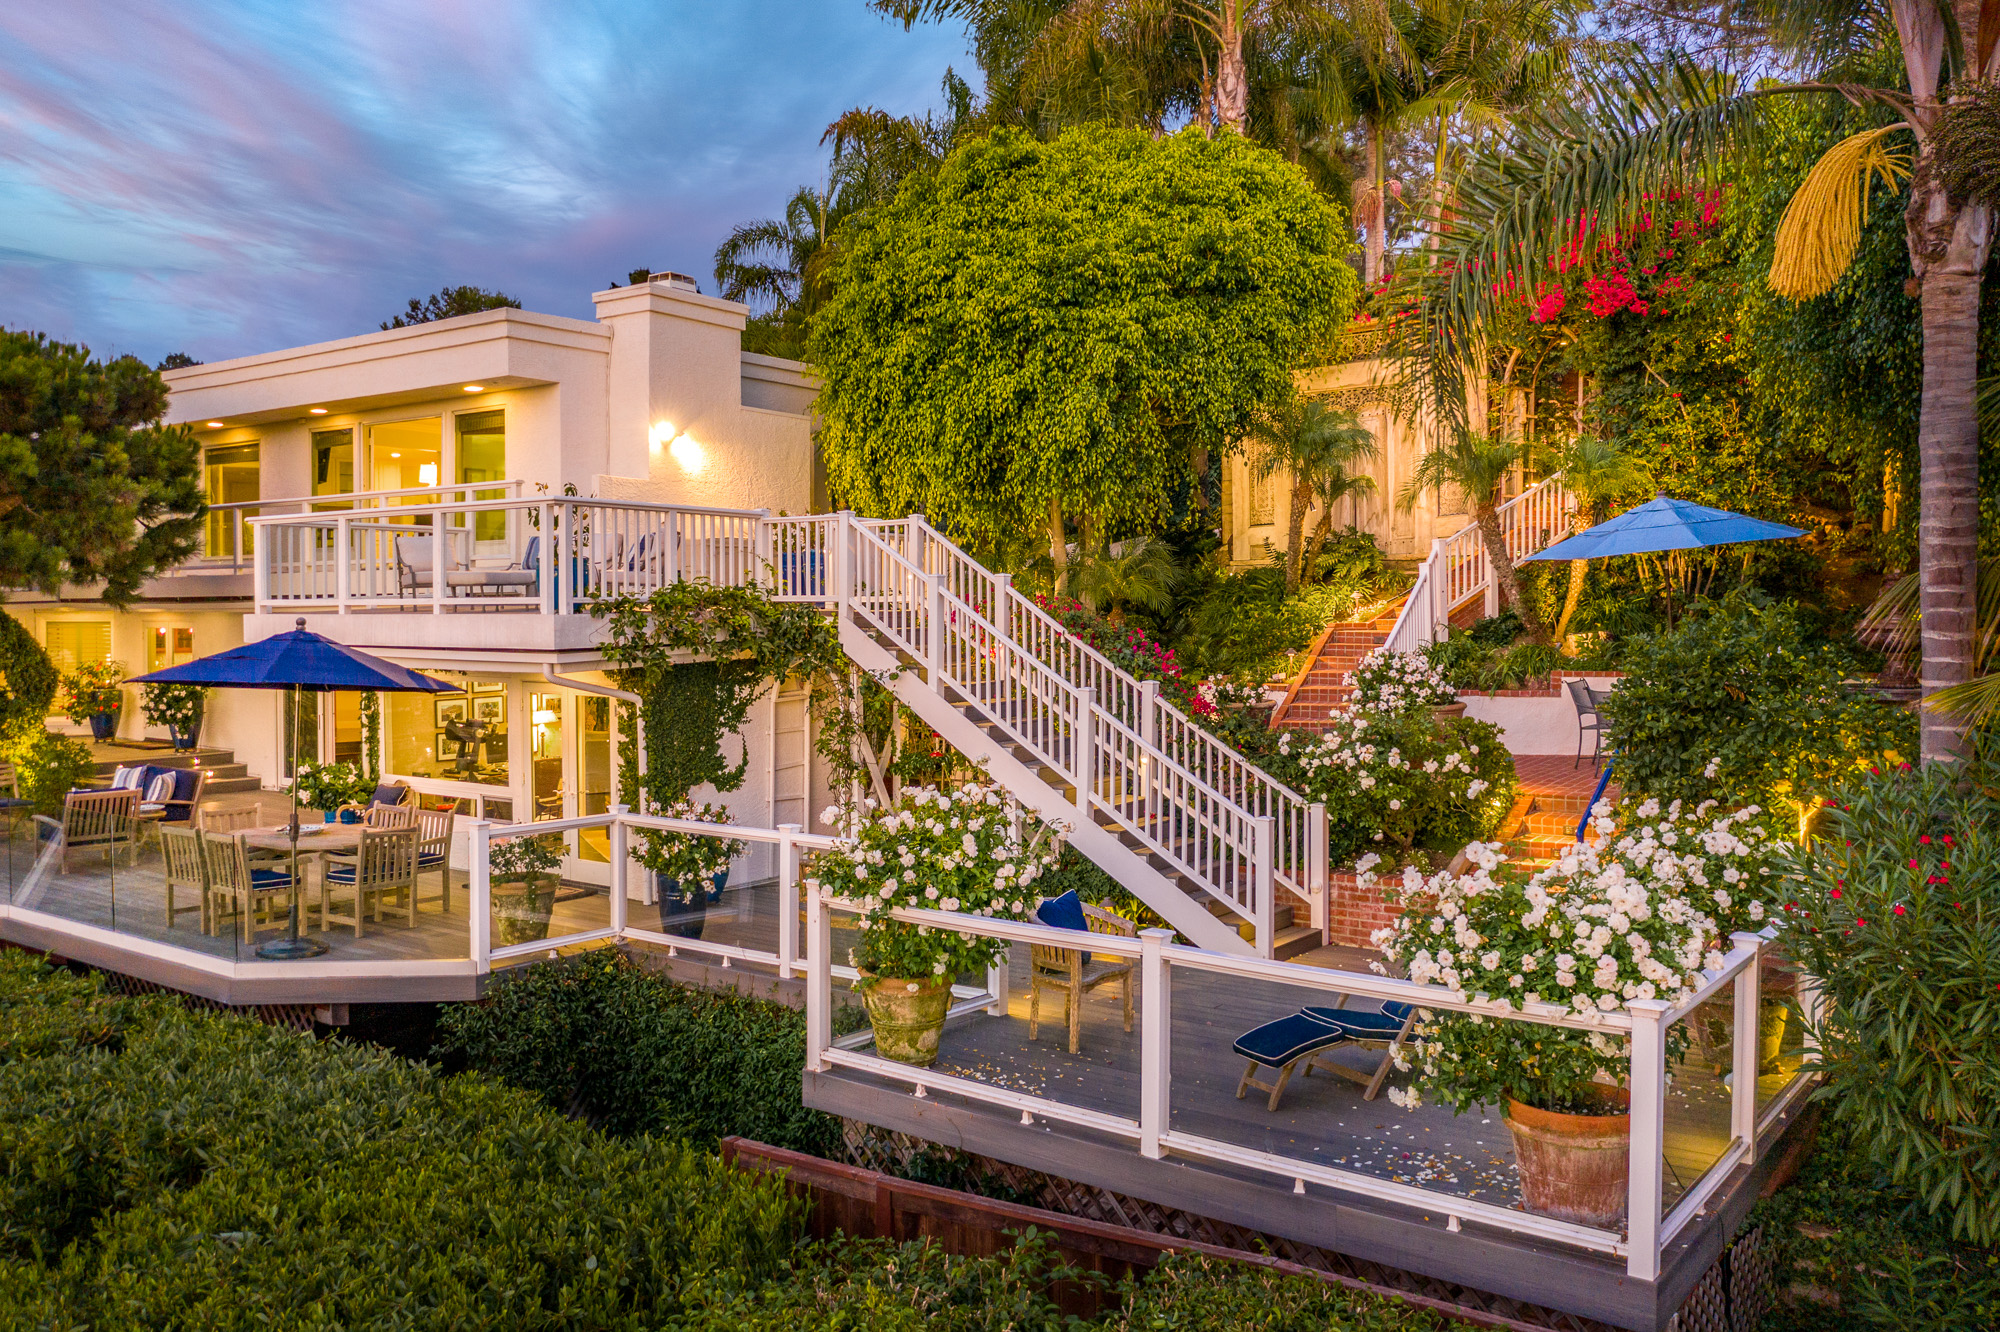 376 Serpentine -  Del Mar, CA 92014